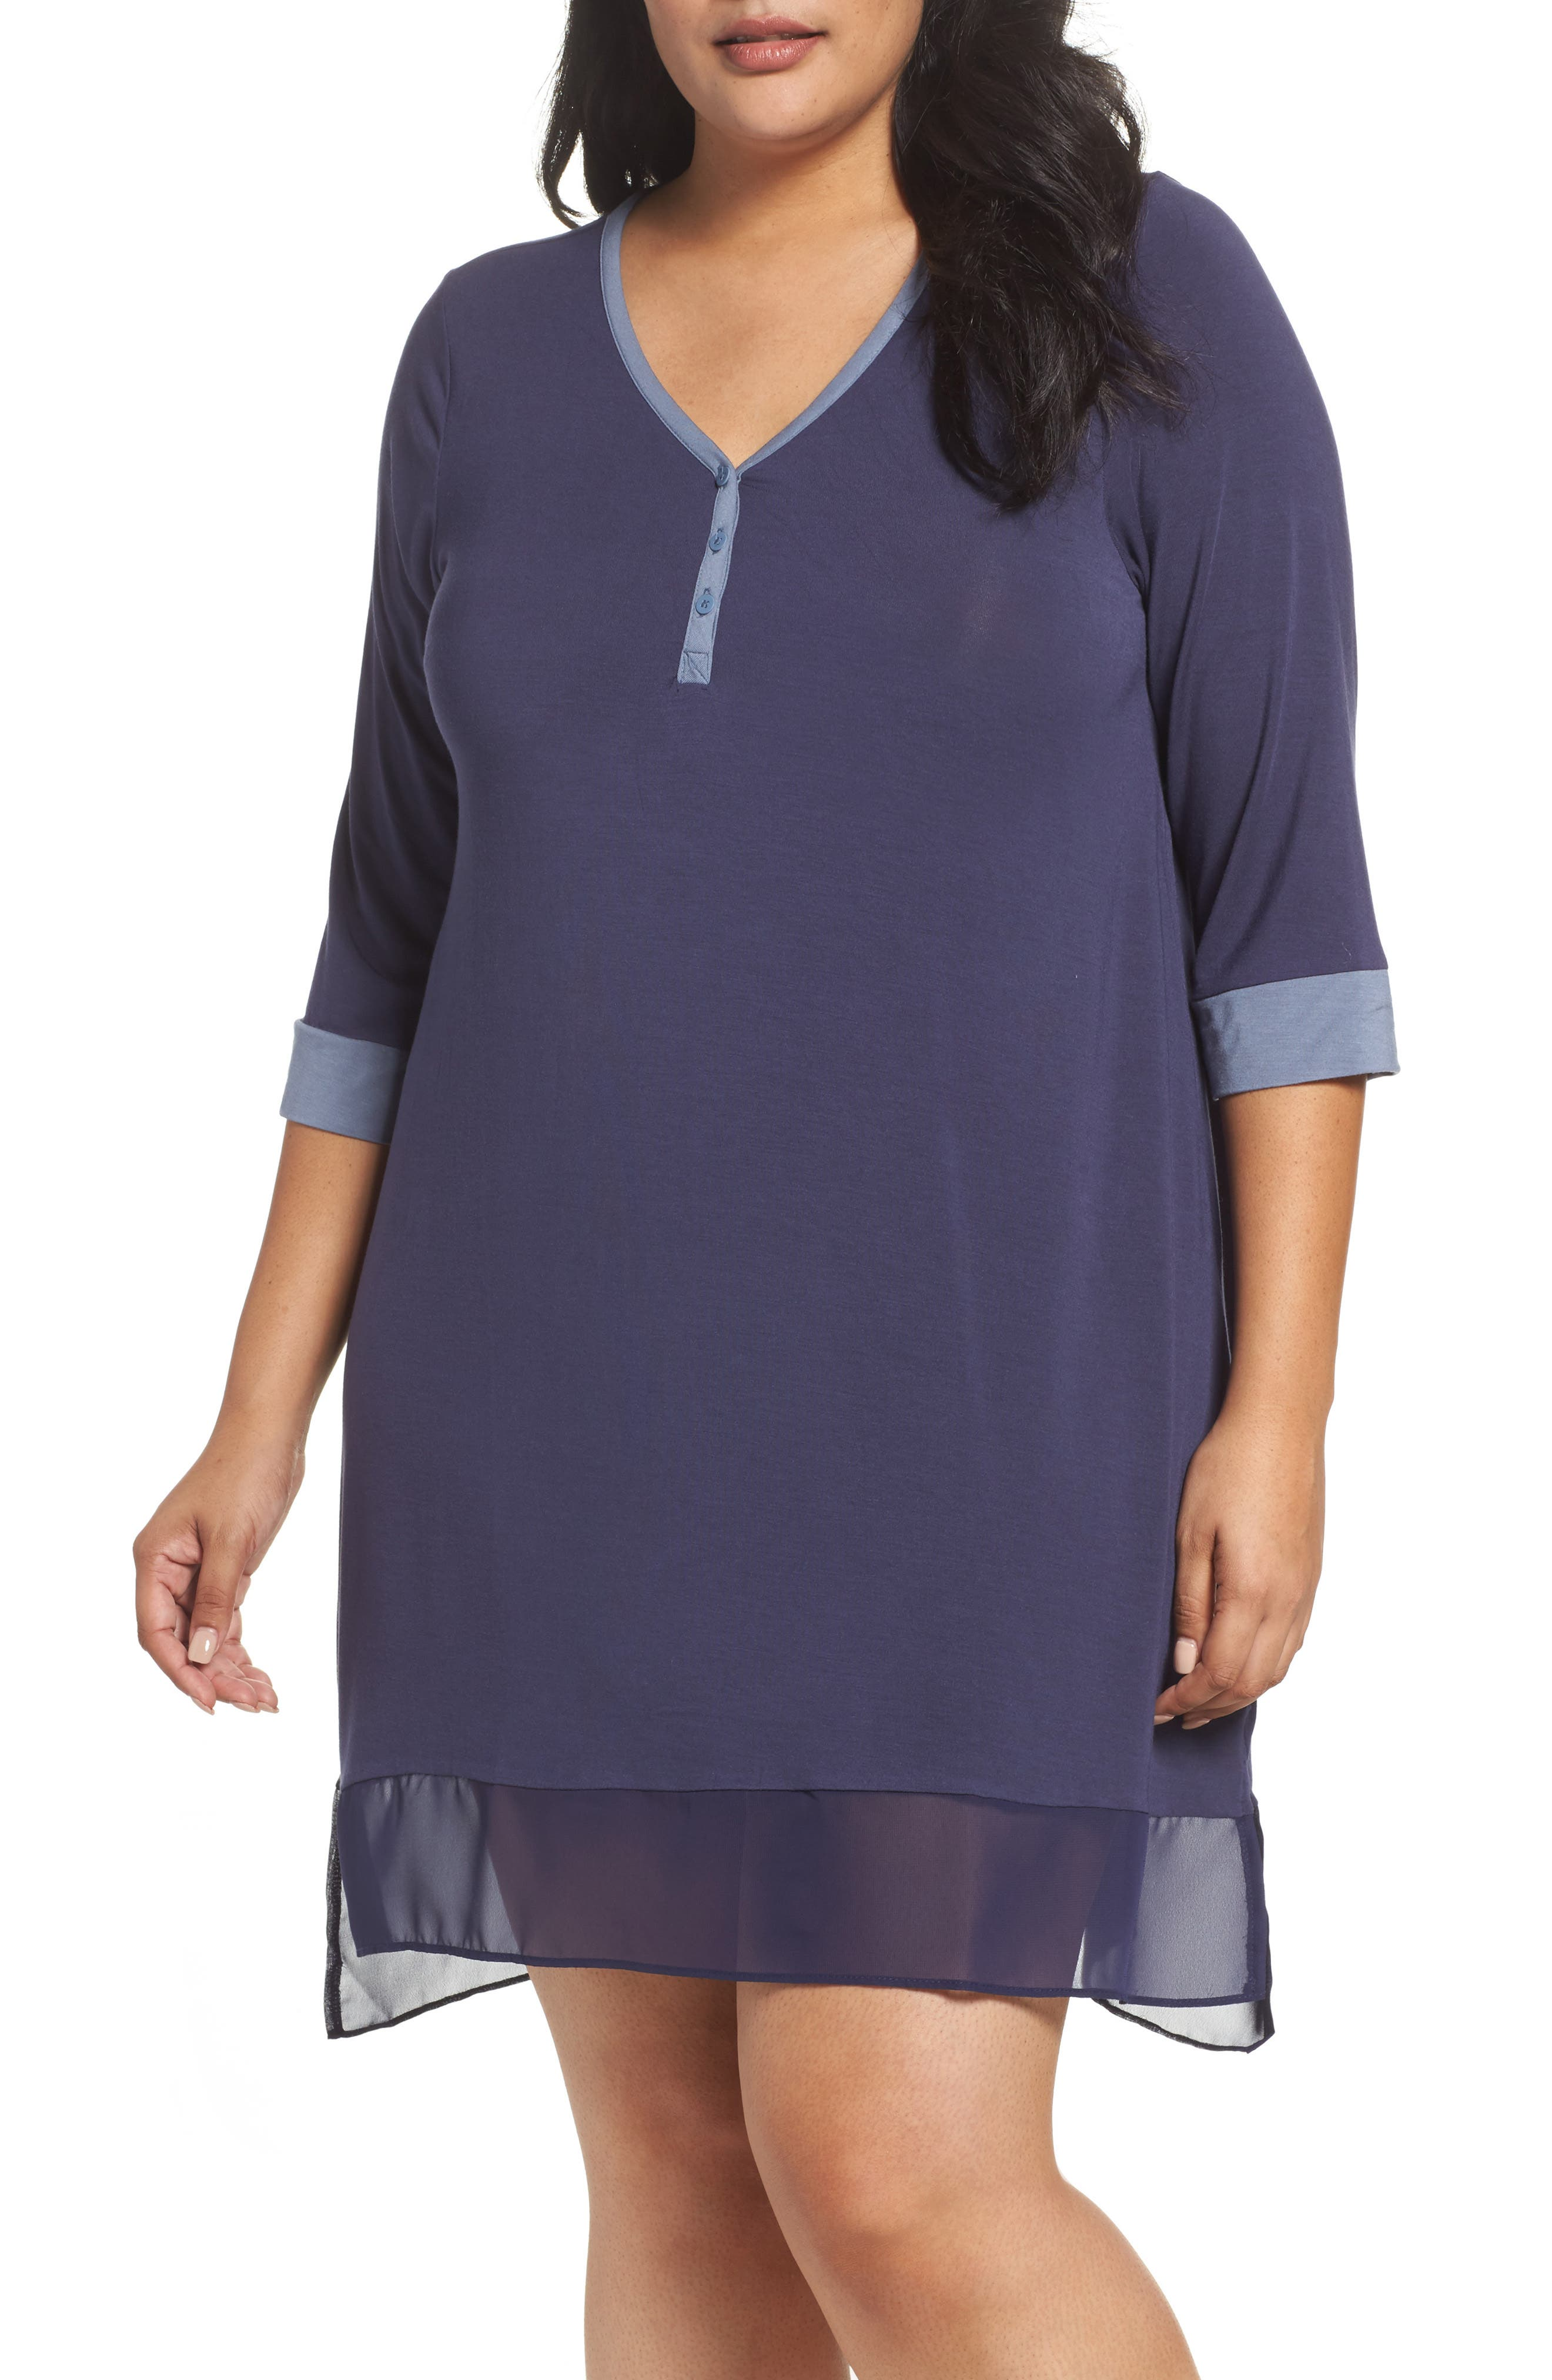 Alternate Image 1 Selected - DKNY Henley Sleep Shirt (Plus)